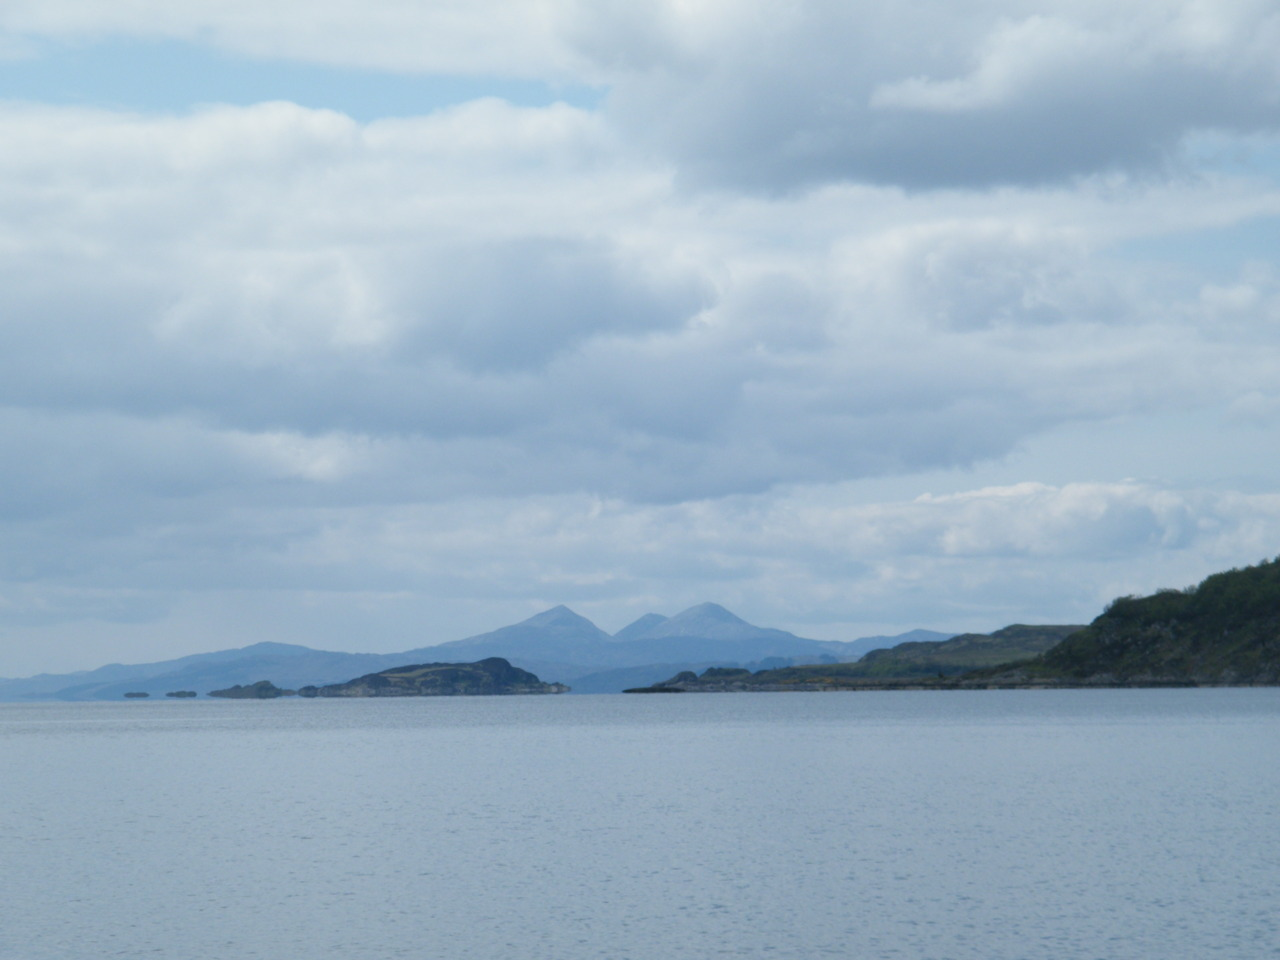 Loch Craignish looking towards the Paps of Jura